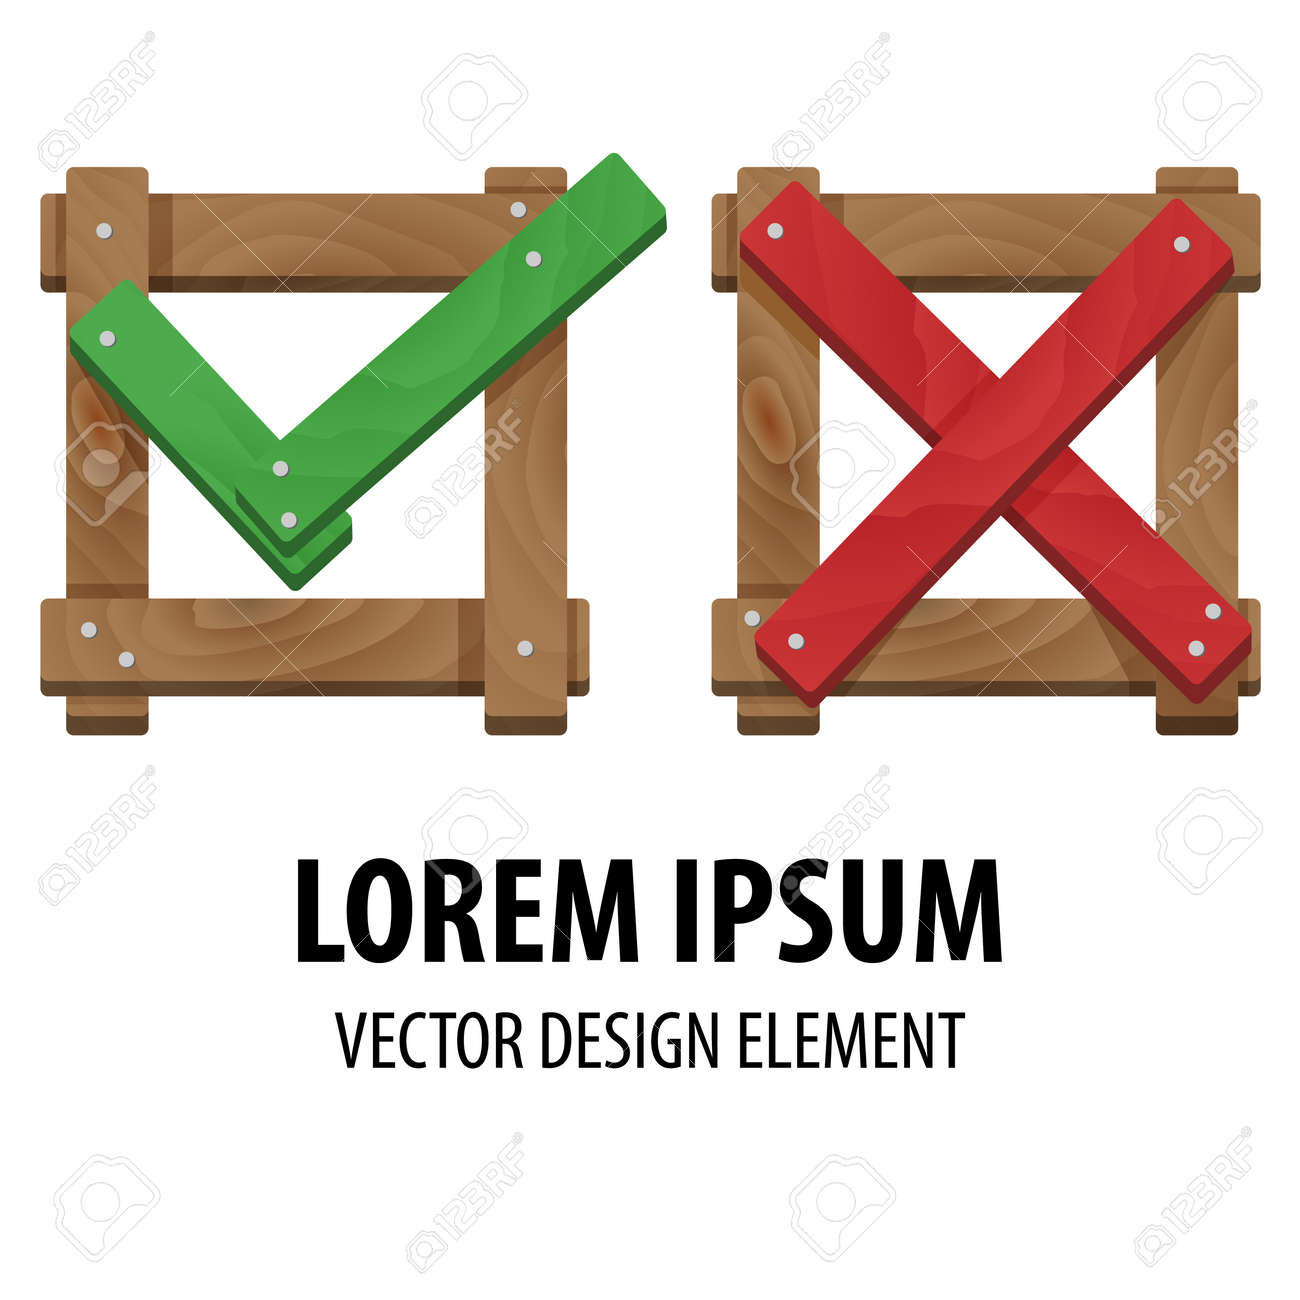 Yes or No icons. Wrong and right check marks made of wood. Check and cross mark. Vector illustration of positive and negative feedback concept. For web design and apps. - 40271603